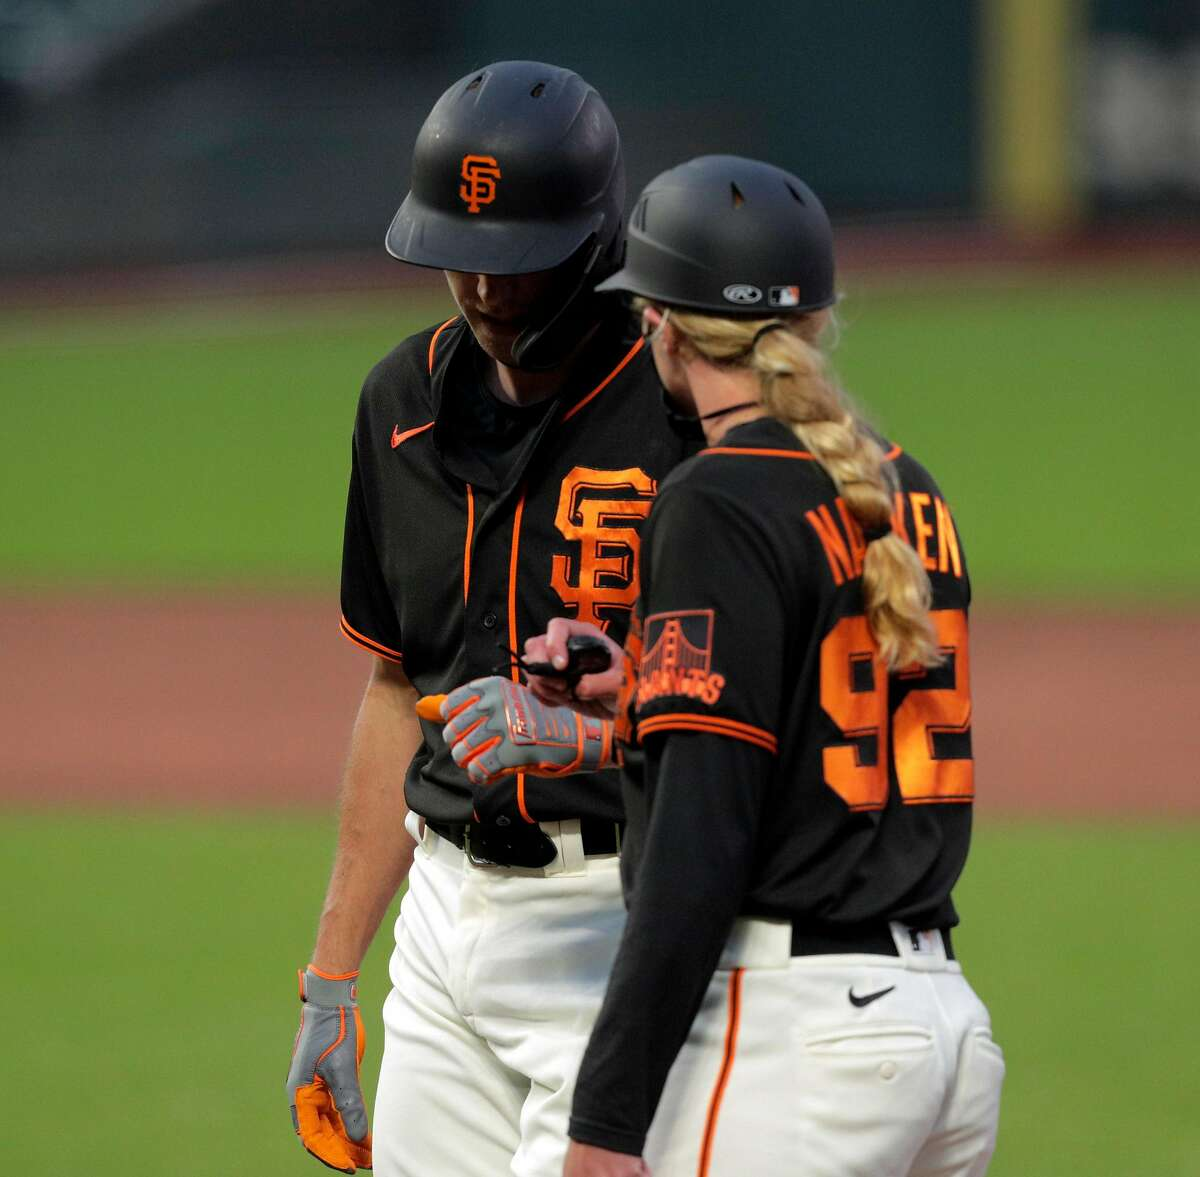 Hunter Pence (8) chats with Giants first base coach Alyssa Nakken after Pence singled in the first as the San Francisco Giants played the Oakland Athletics in a summer exhibition game at Oracle Park in San Francisco, Calif., on Tuesday, July 21, 2020.